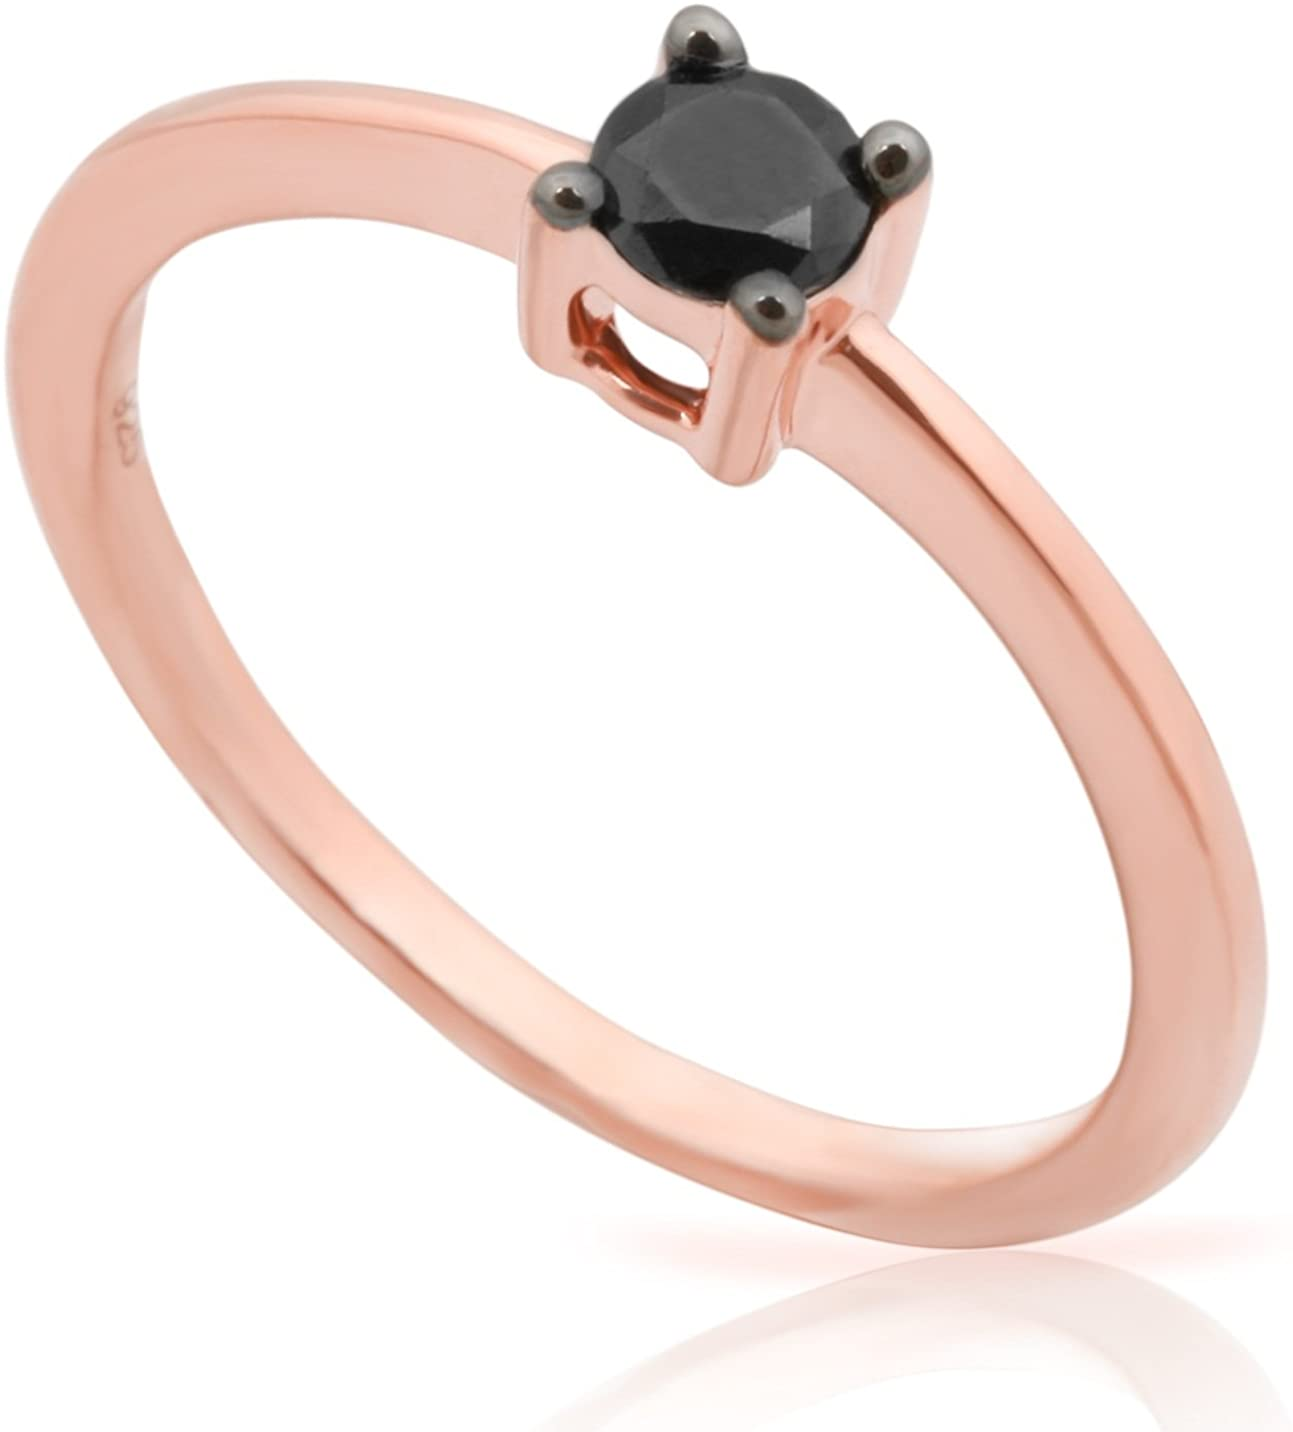 Prism Jewel 0.36Ct Black Diamond Solitaire Engagement Ring Crafted in 10k Rose Gold, Size 9.5